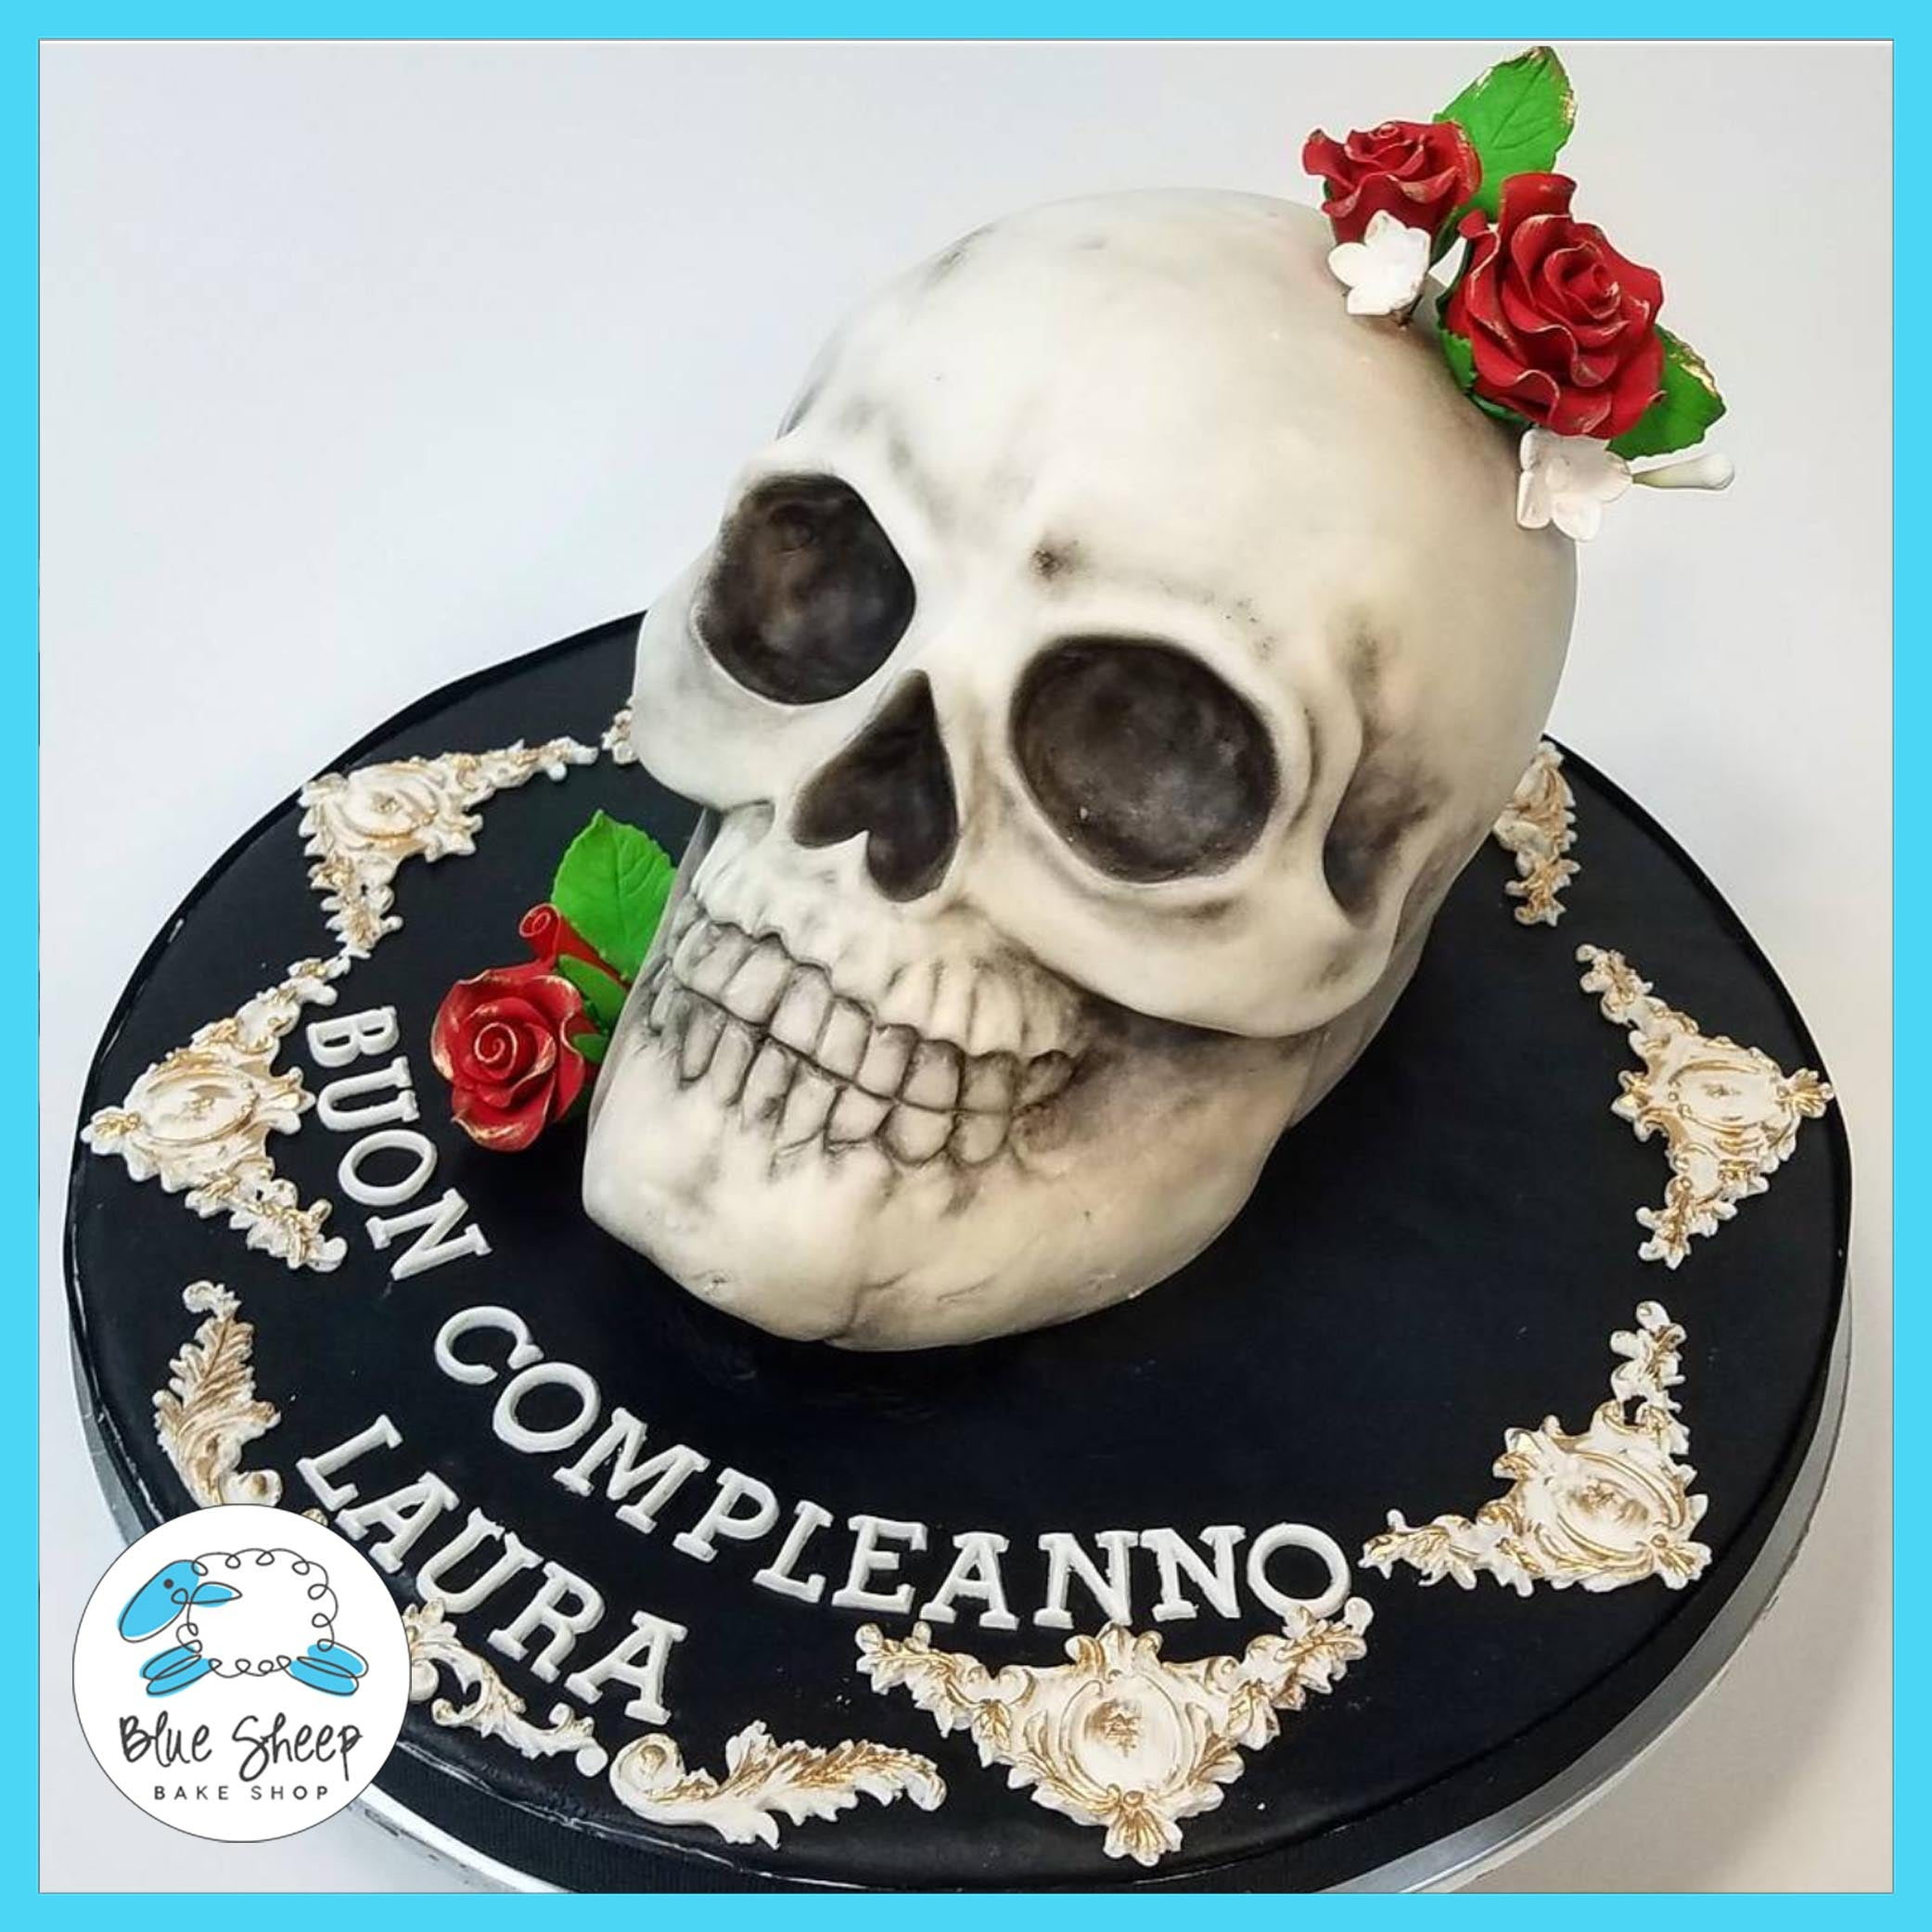 Lauras Day Of The Dead Birthday Cake Blue Sheep Bake Shop